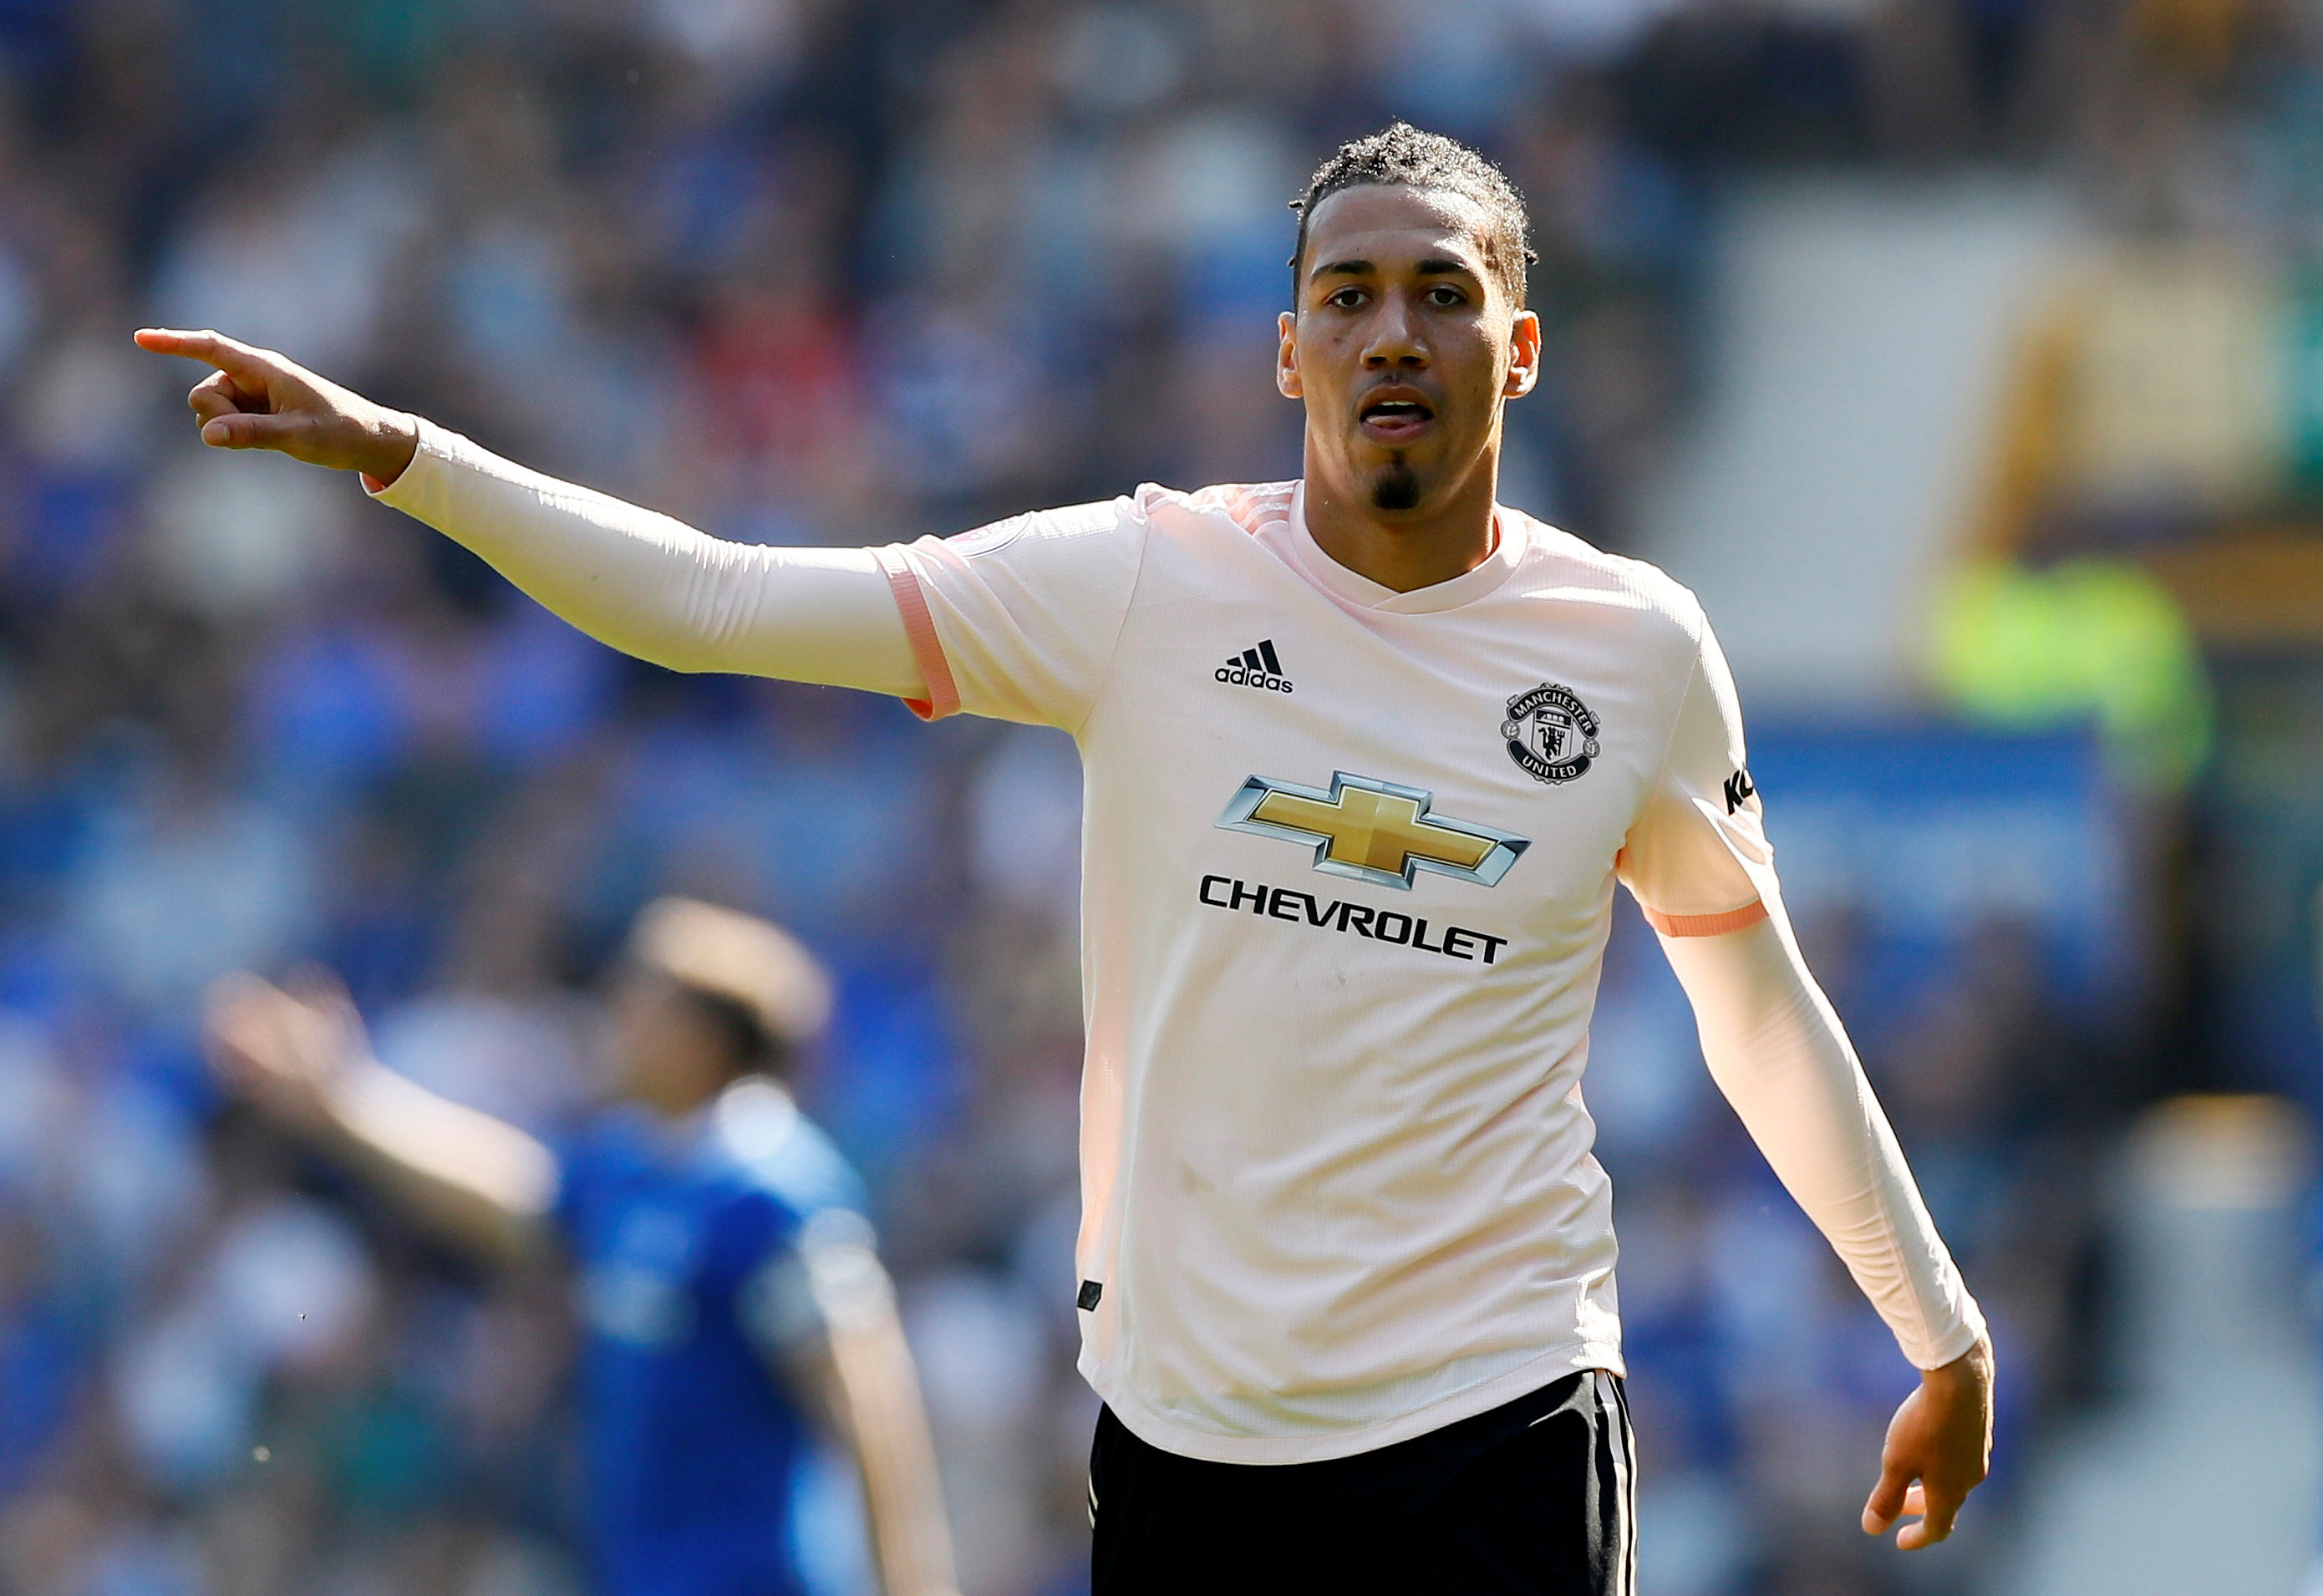 Manchester United latest transfer news and rumours today now